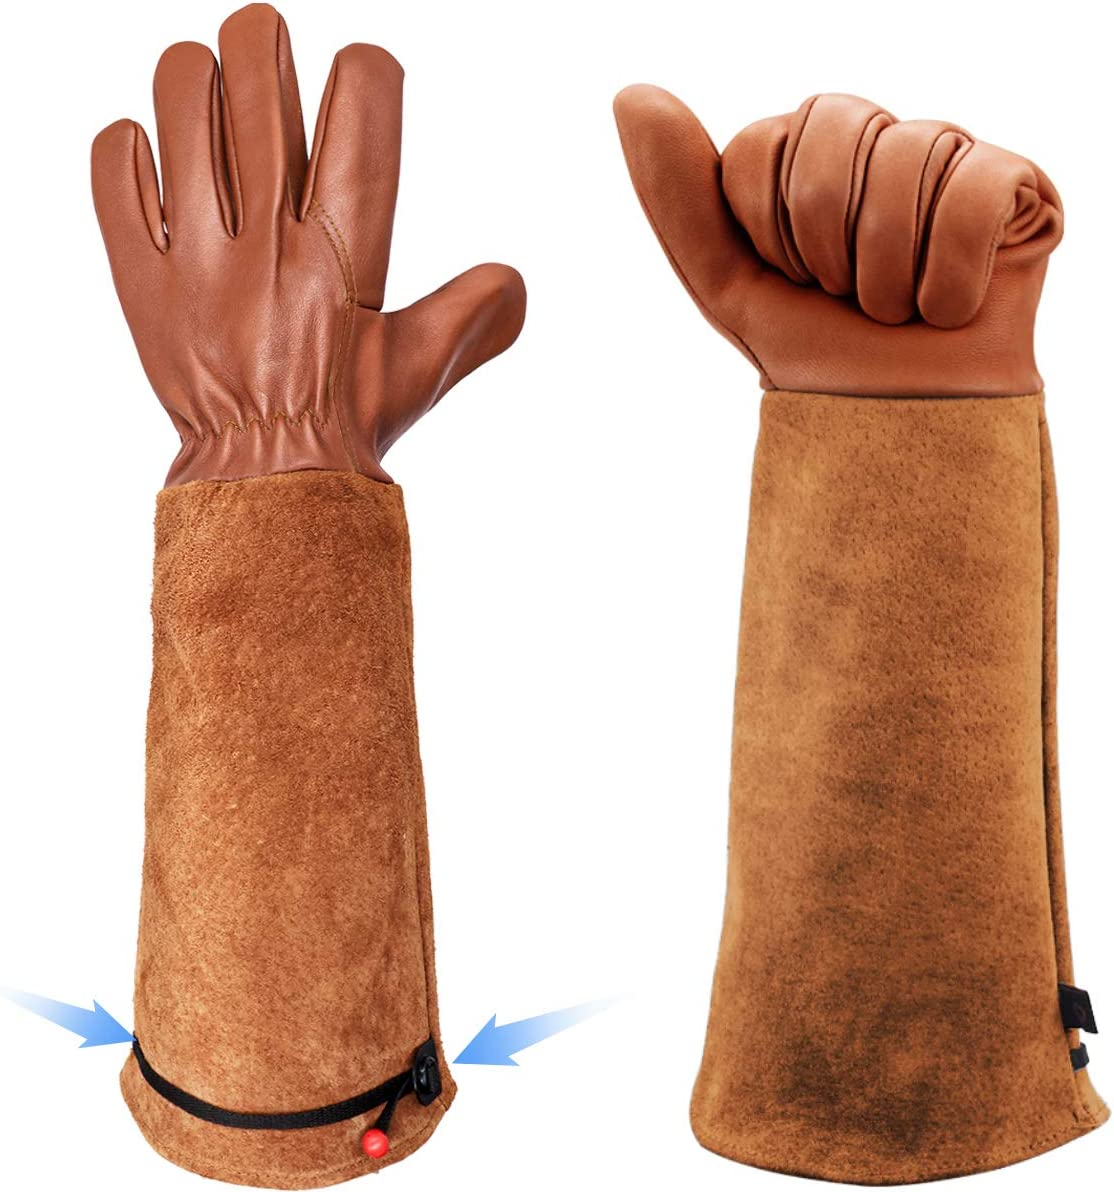 Long Gardening Gloves for Women/Men - Adjustable Cuff Goatskin & Cowhide Thorn Proof Cactus Rose Pruning Gloves Leather Work Gauntlet Puncture Poke Proof Elbow Long Sleeve Garden Gloves for Gardener Gift